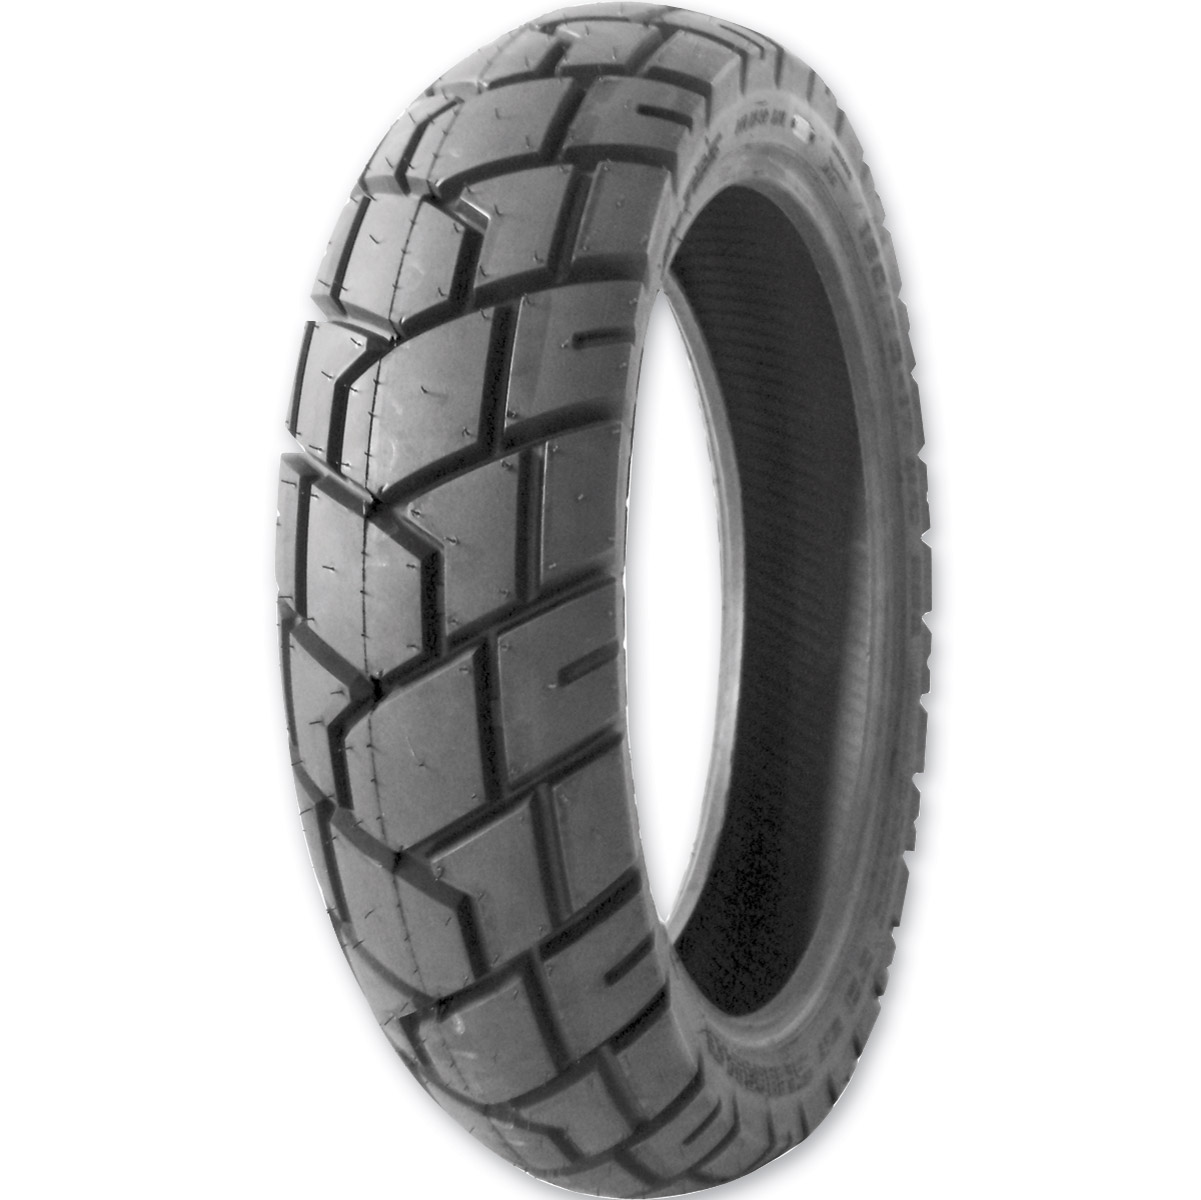 Shinko 705 Series 4.10-18 Front/Rear Tire